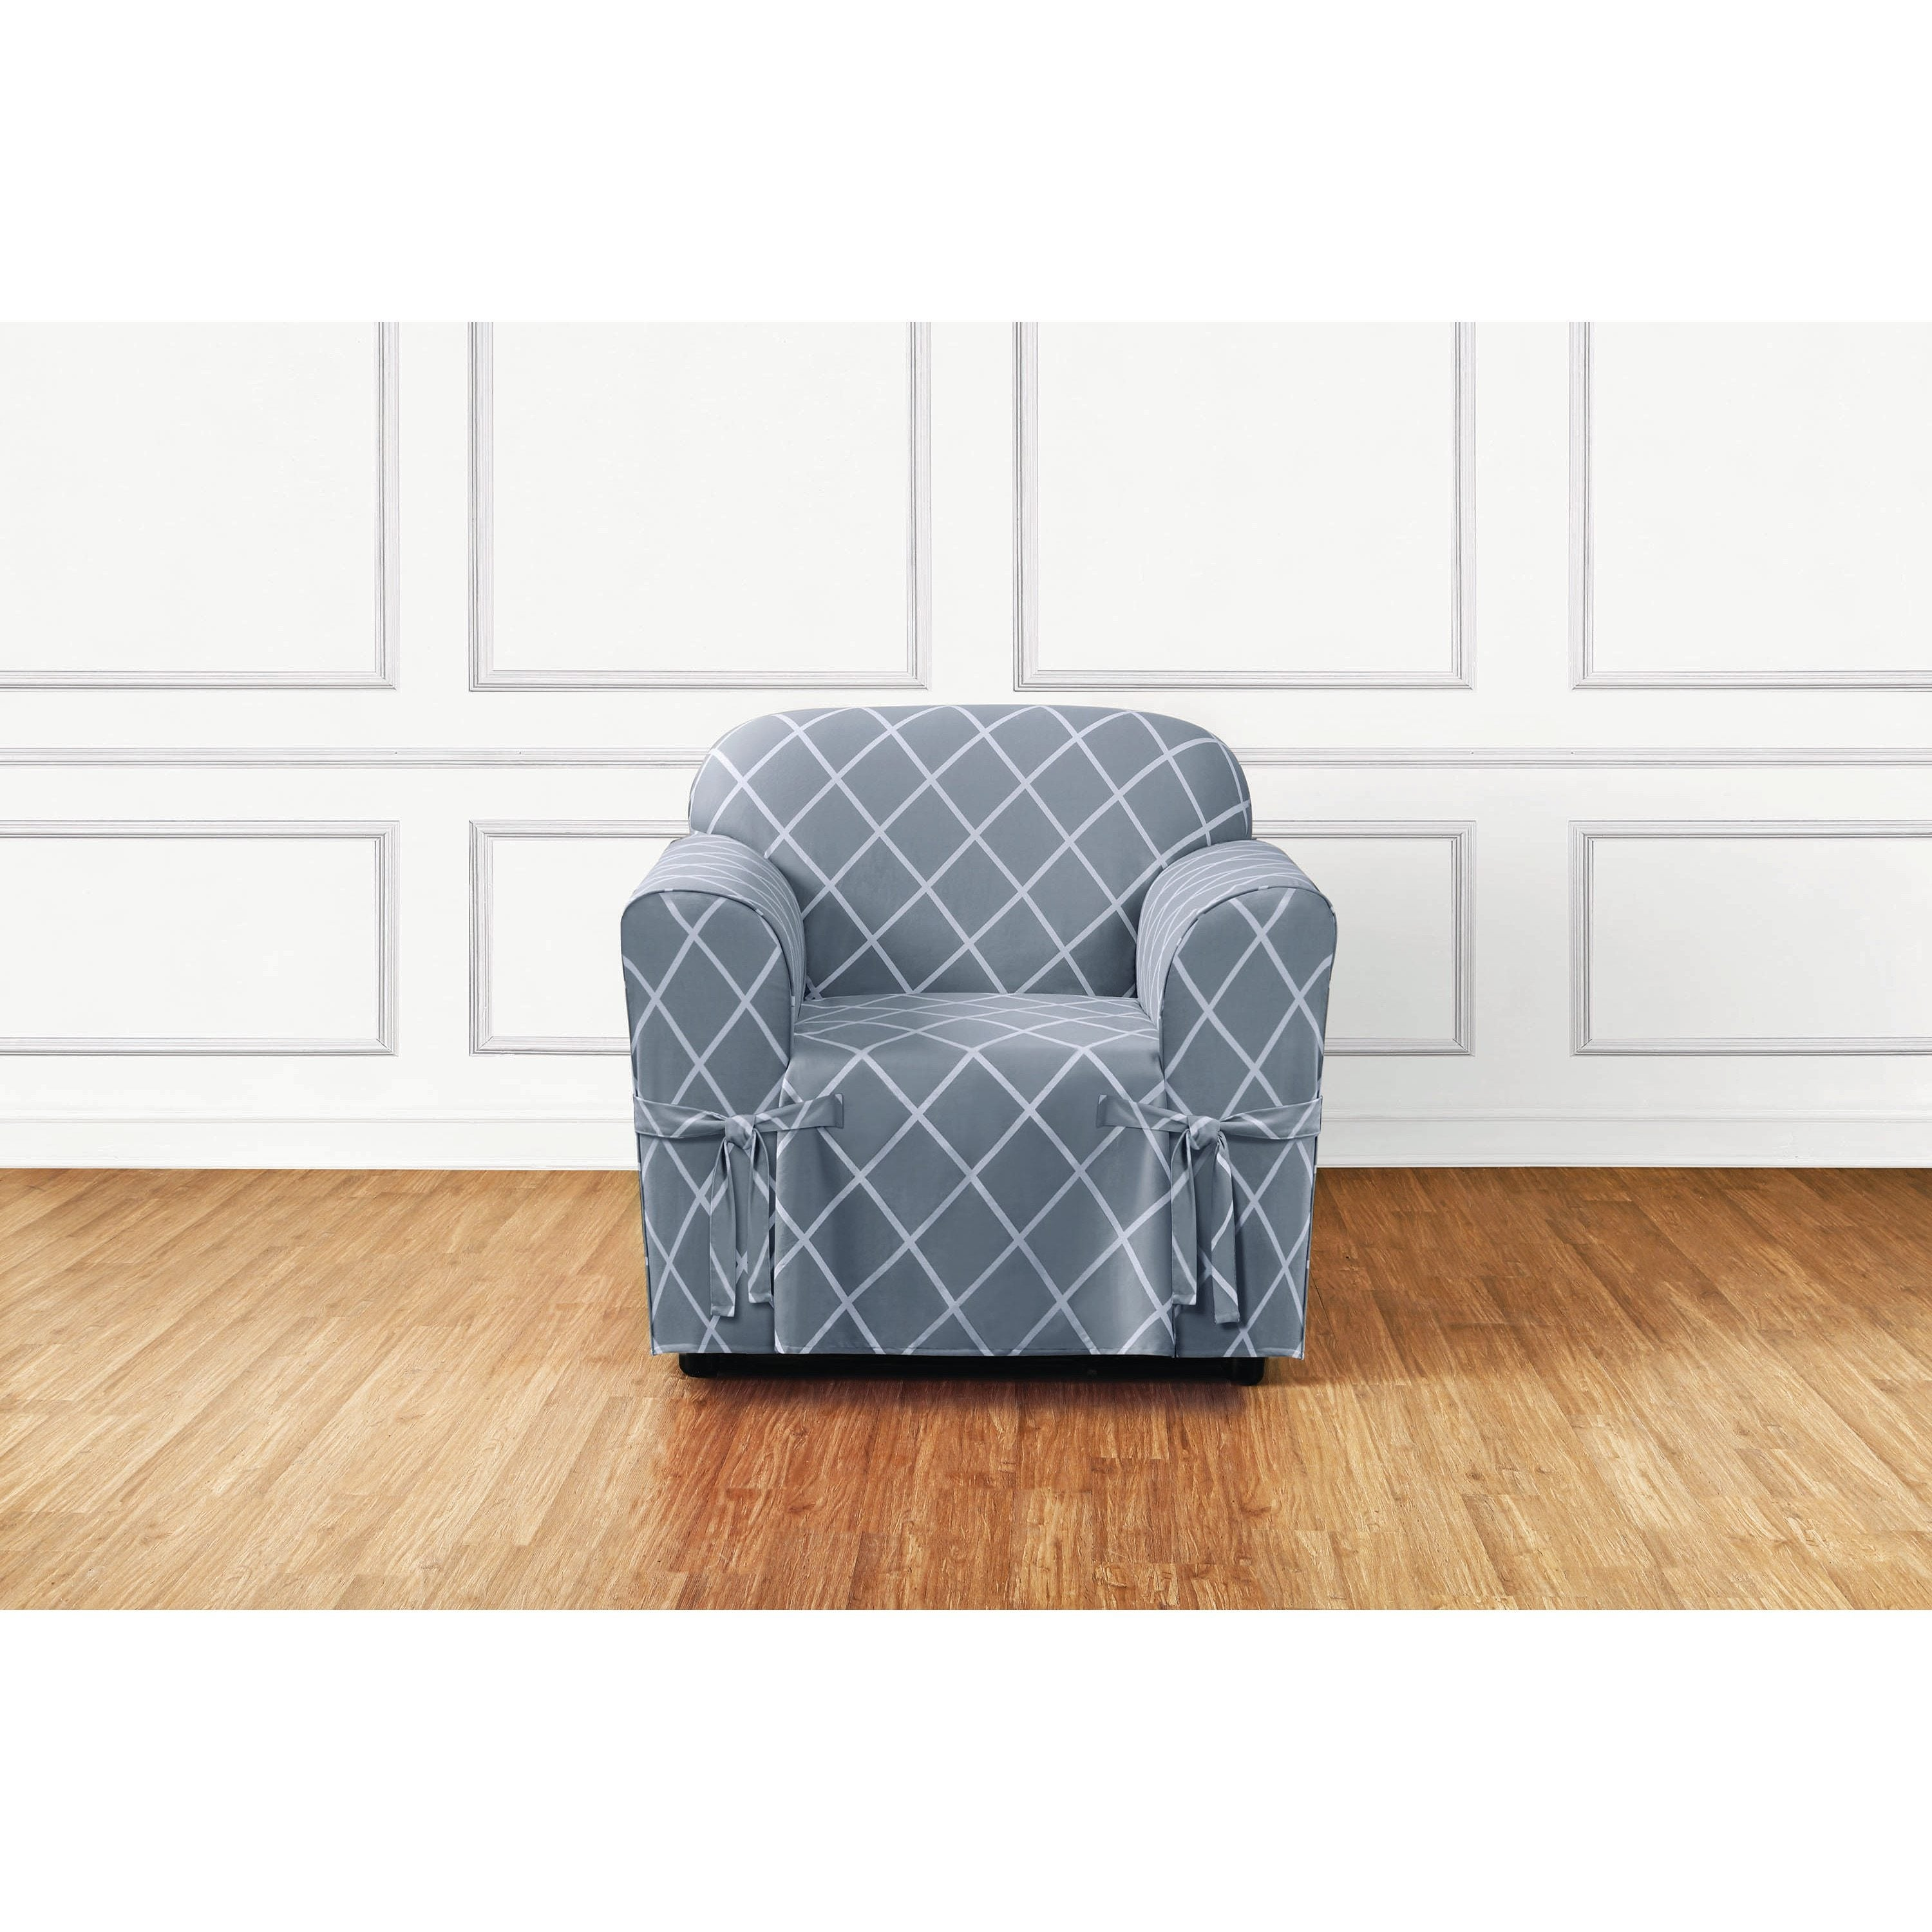 Sure Fit Lattice 1 Piece Slip Cover With Ties And Cord Chair